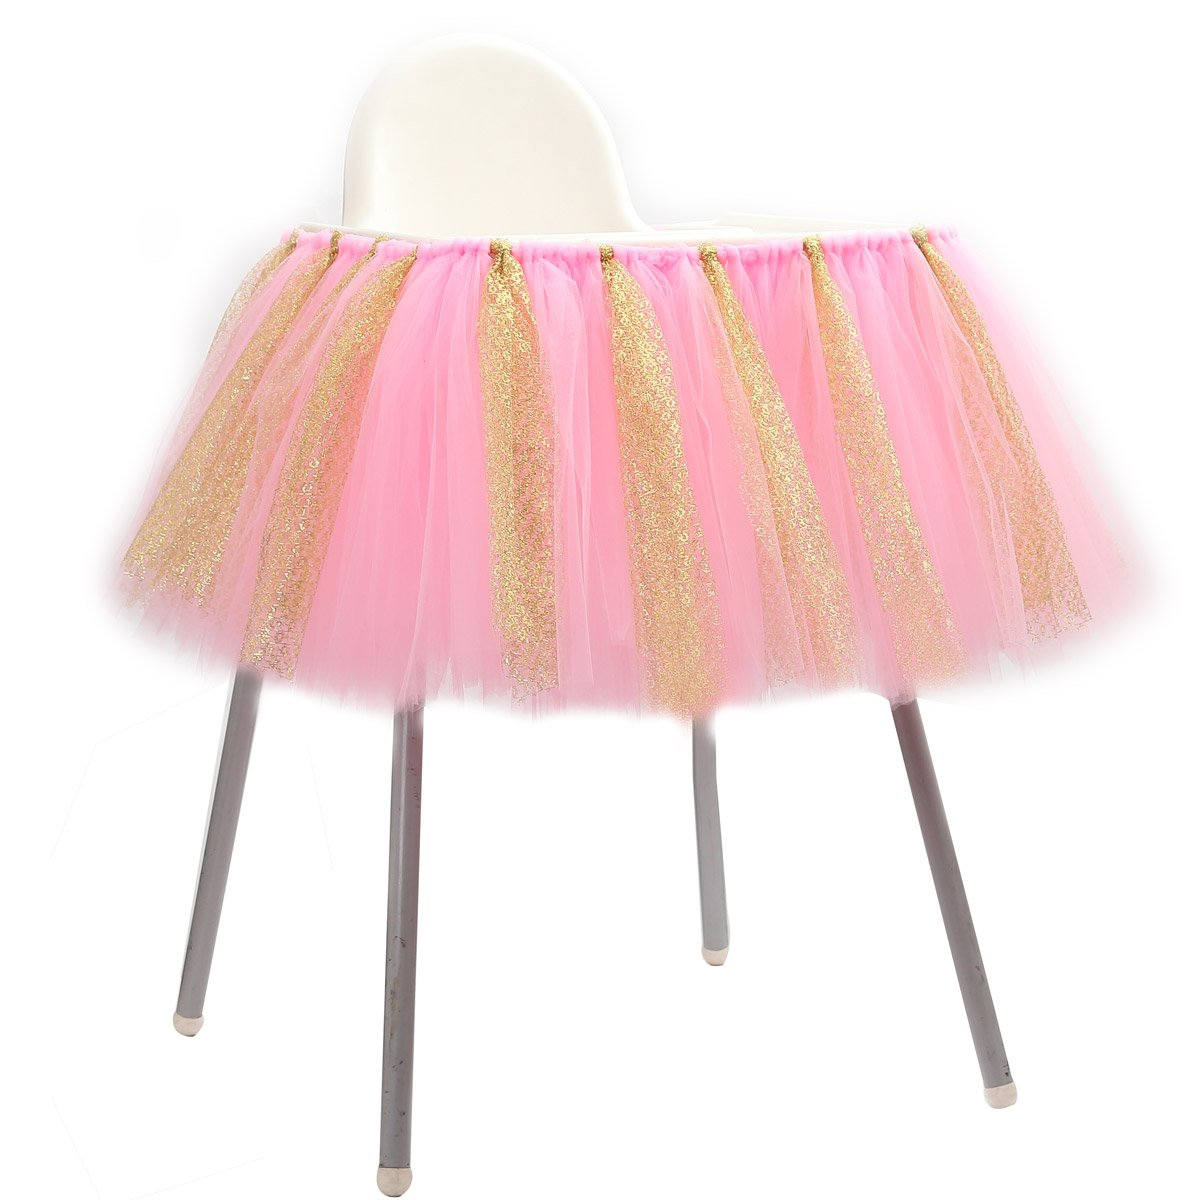 SL crafts Pink Gold Glitter Tulle High Chair Tutu Skirt Decoration Baby Shower Birthday Party Supplies 36x13.8 Inch (Pink Gold)